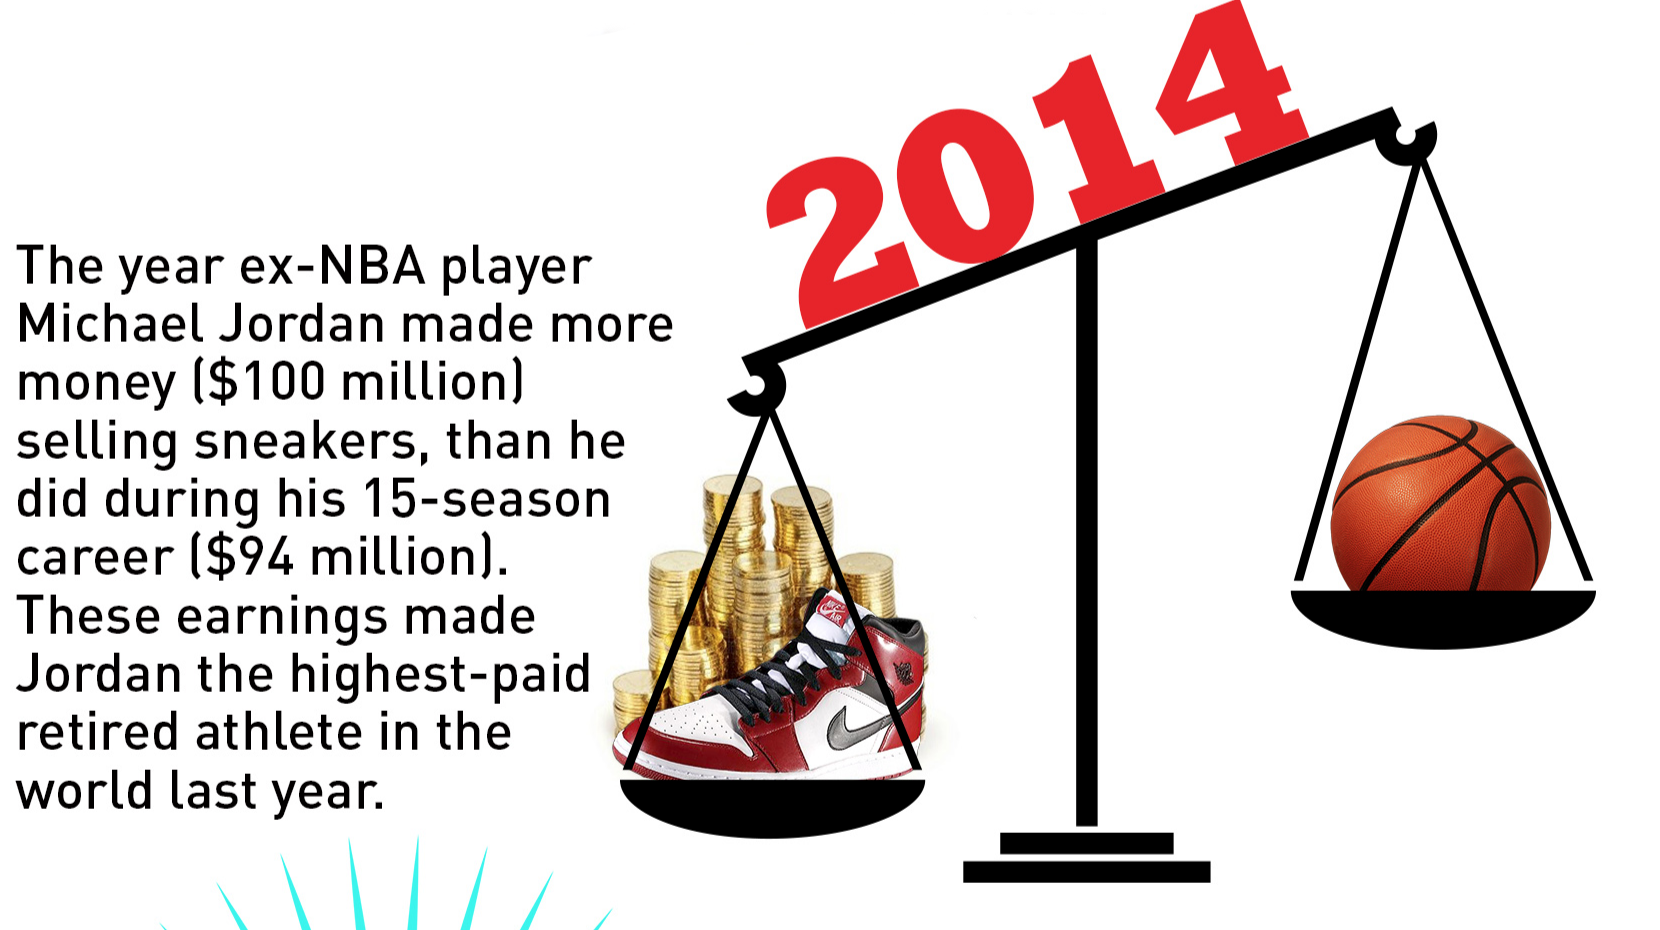 4247780c83b Michael Jordan earned more in 2014 from sneakers than in playing career -  CBSSports.com